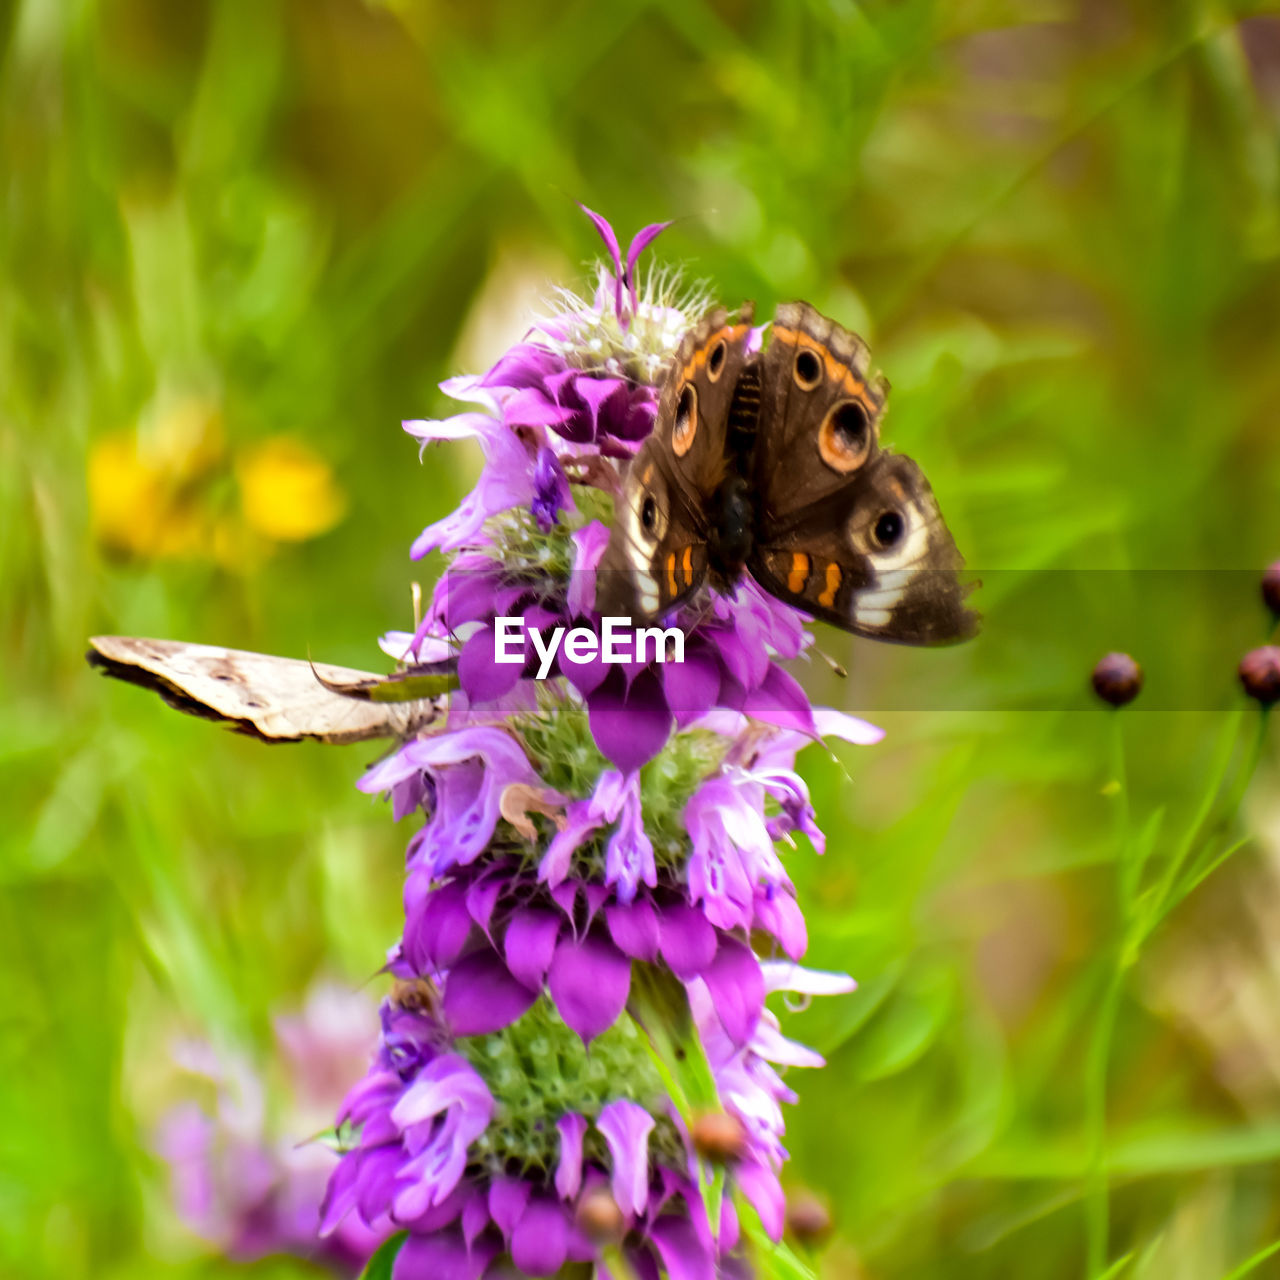 flowering plant, flower, animal themes, animal, one animal, animal wildlife, animals in the wild, plant, invertebrate, insect, beauty in nature, freshness, petal, fragility, close-up, vulnerability, nature, growth, flower head, pollination, purple, no people, animal wing, butterfly - insect